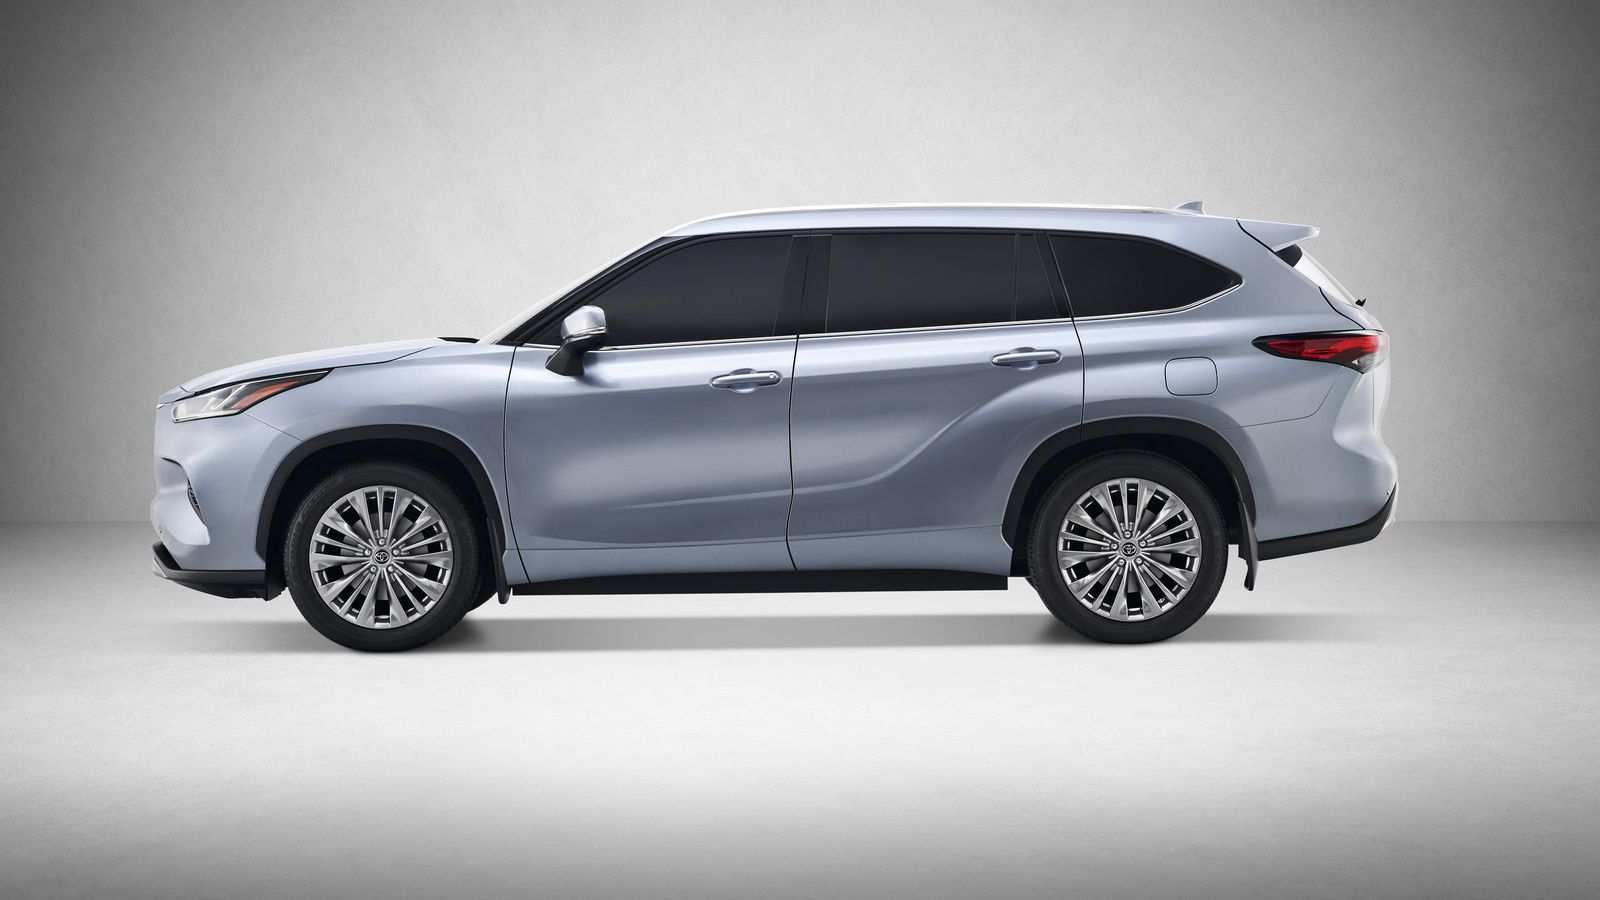 95 The Toyota Kluger Hybrid 2020 Rumors by Toyota Kluger Hybrid 2020